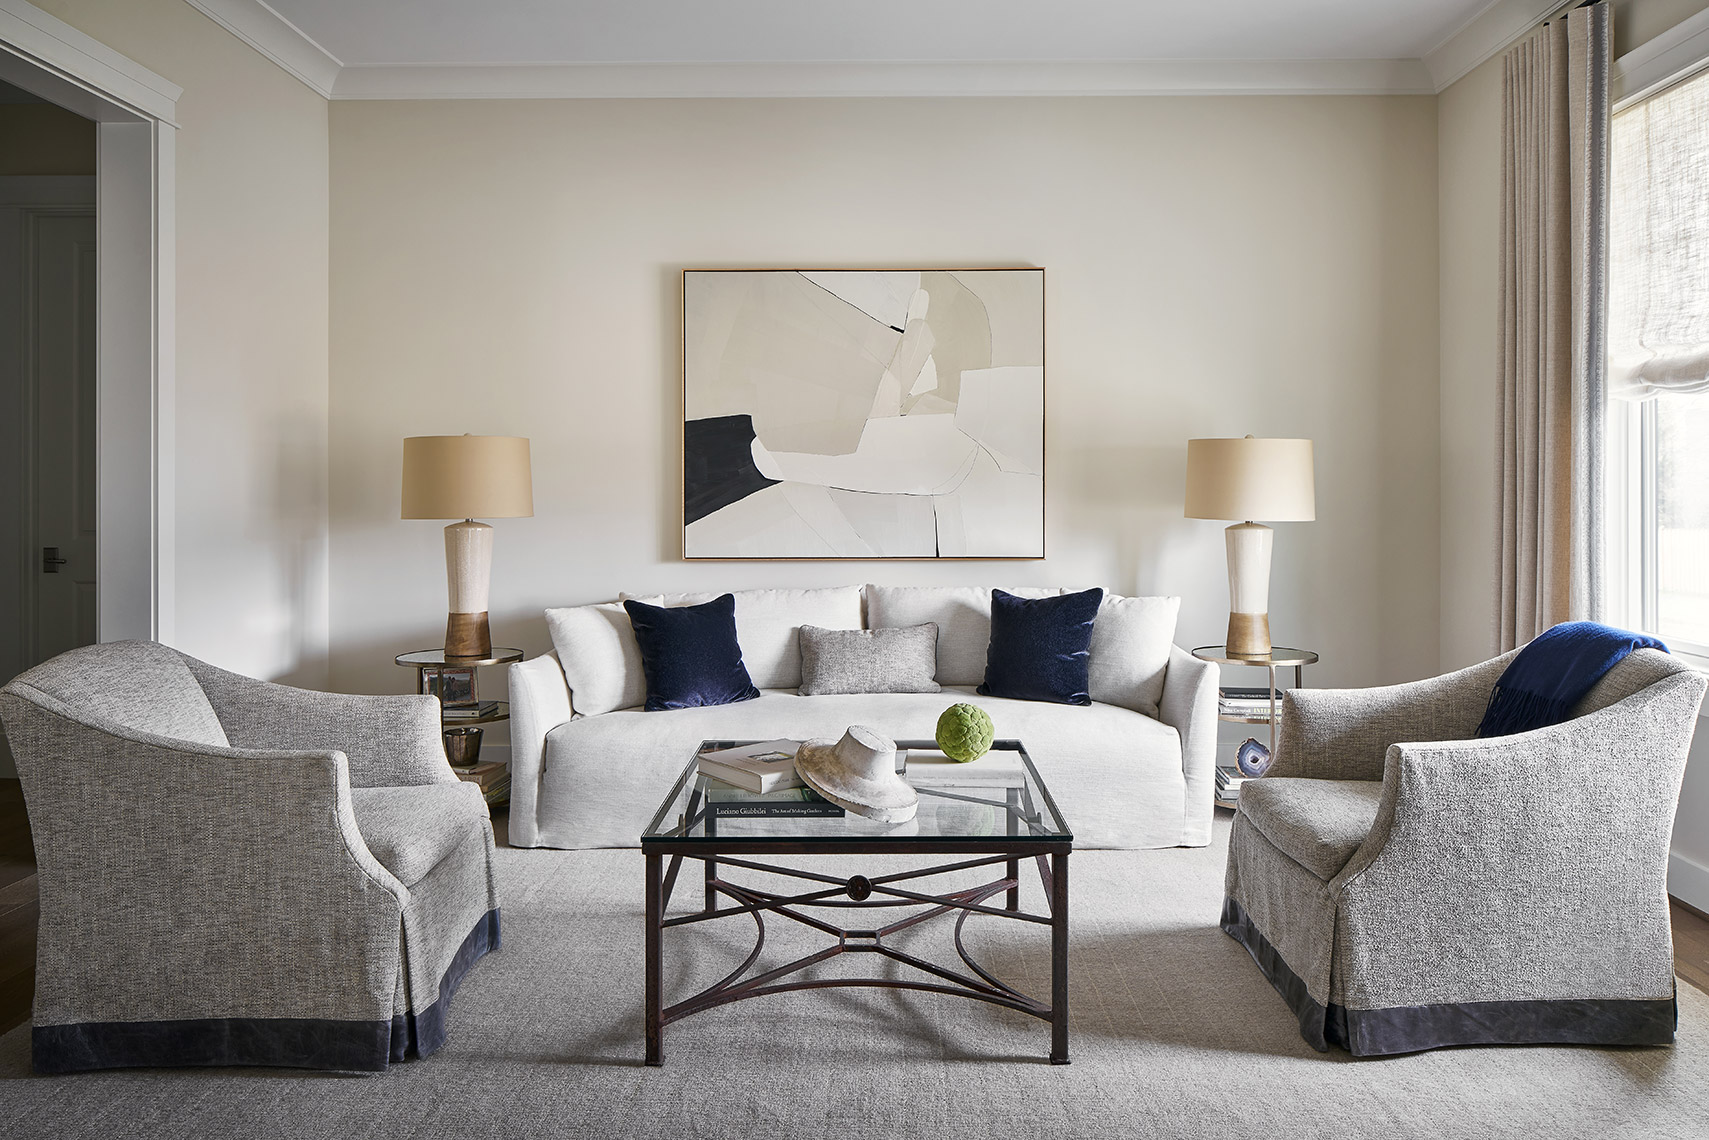 Interiors-Tracy-Morris-Home-Sitting-Room-1181